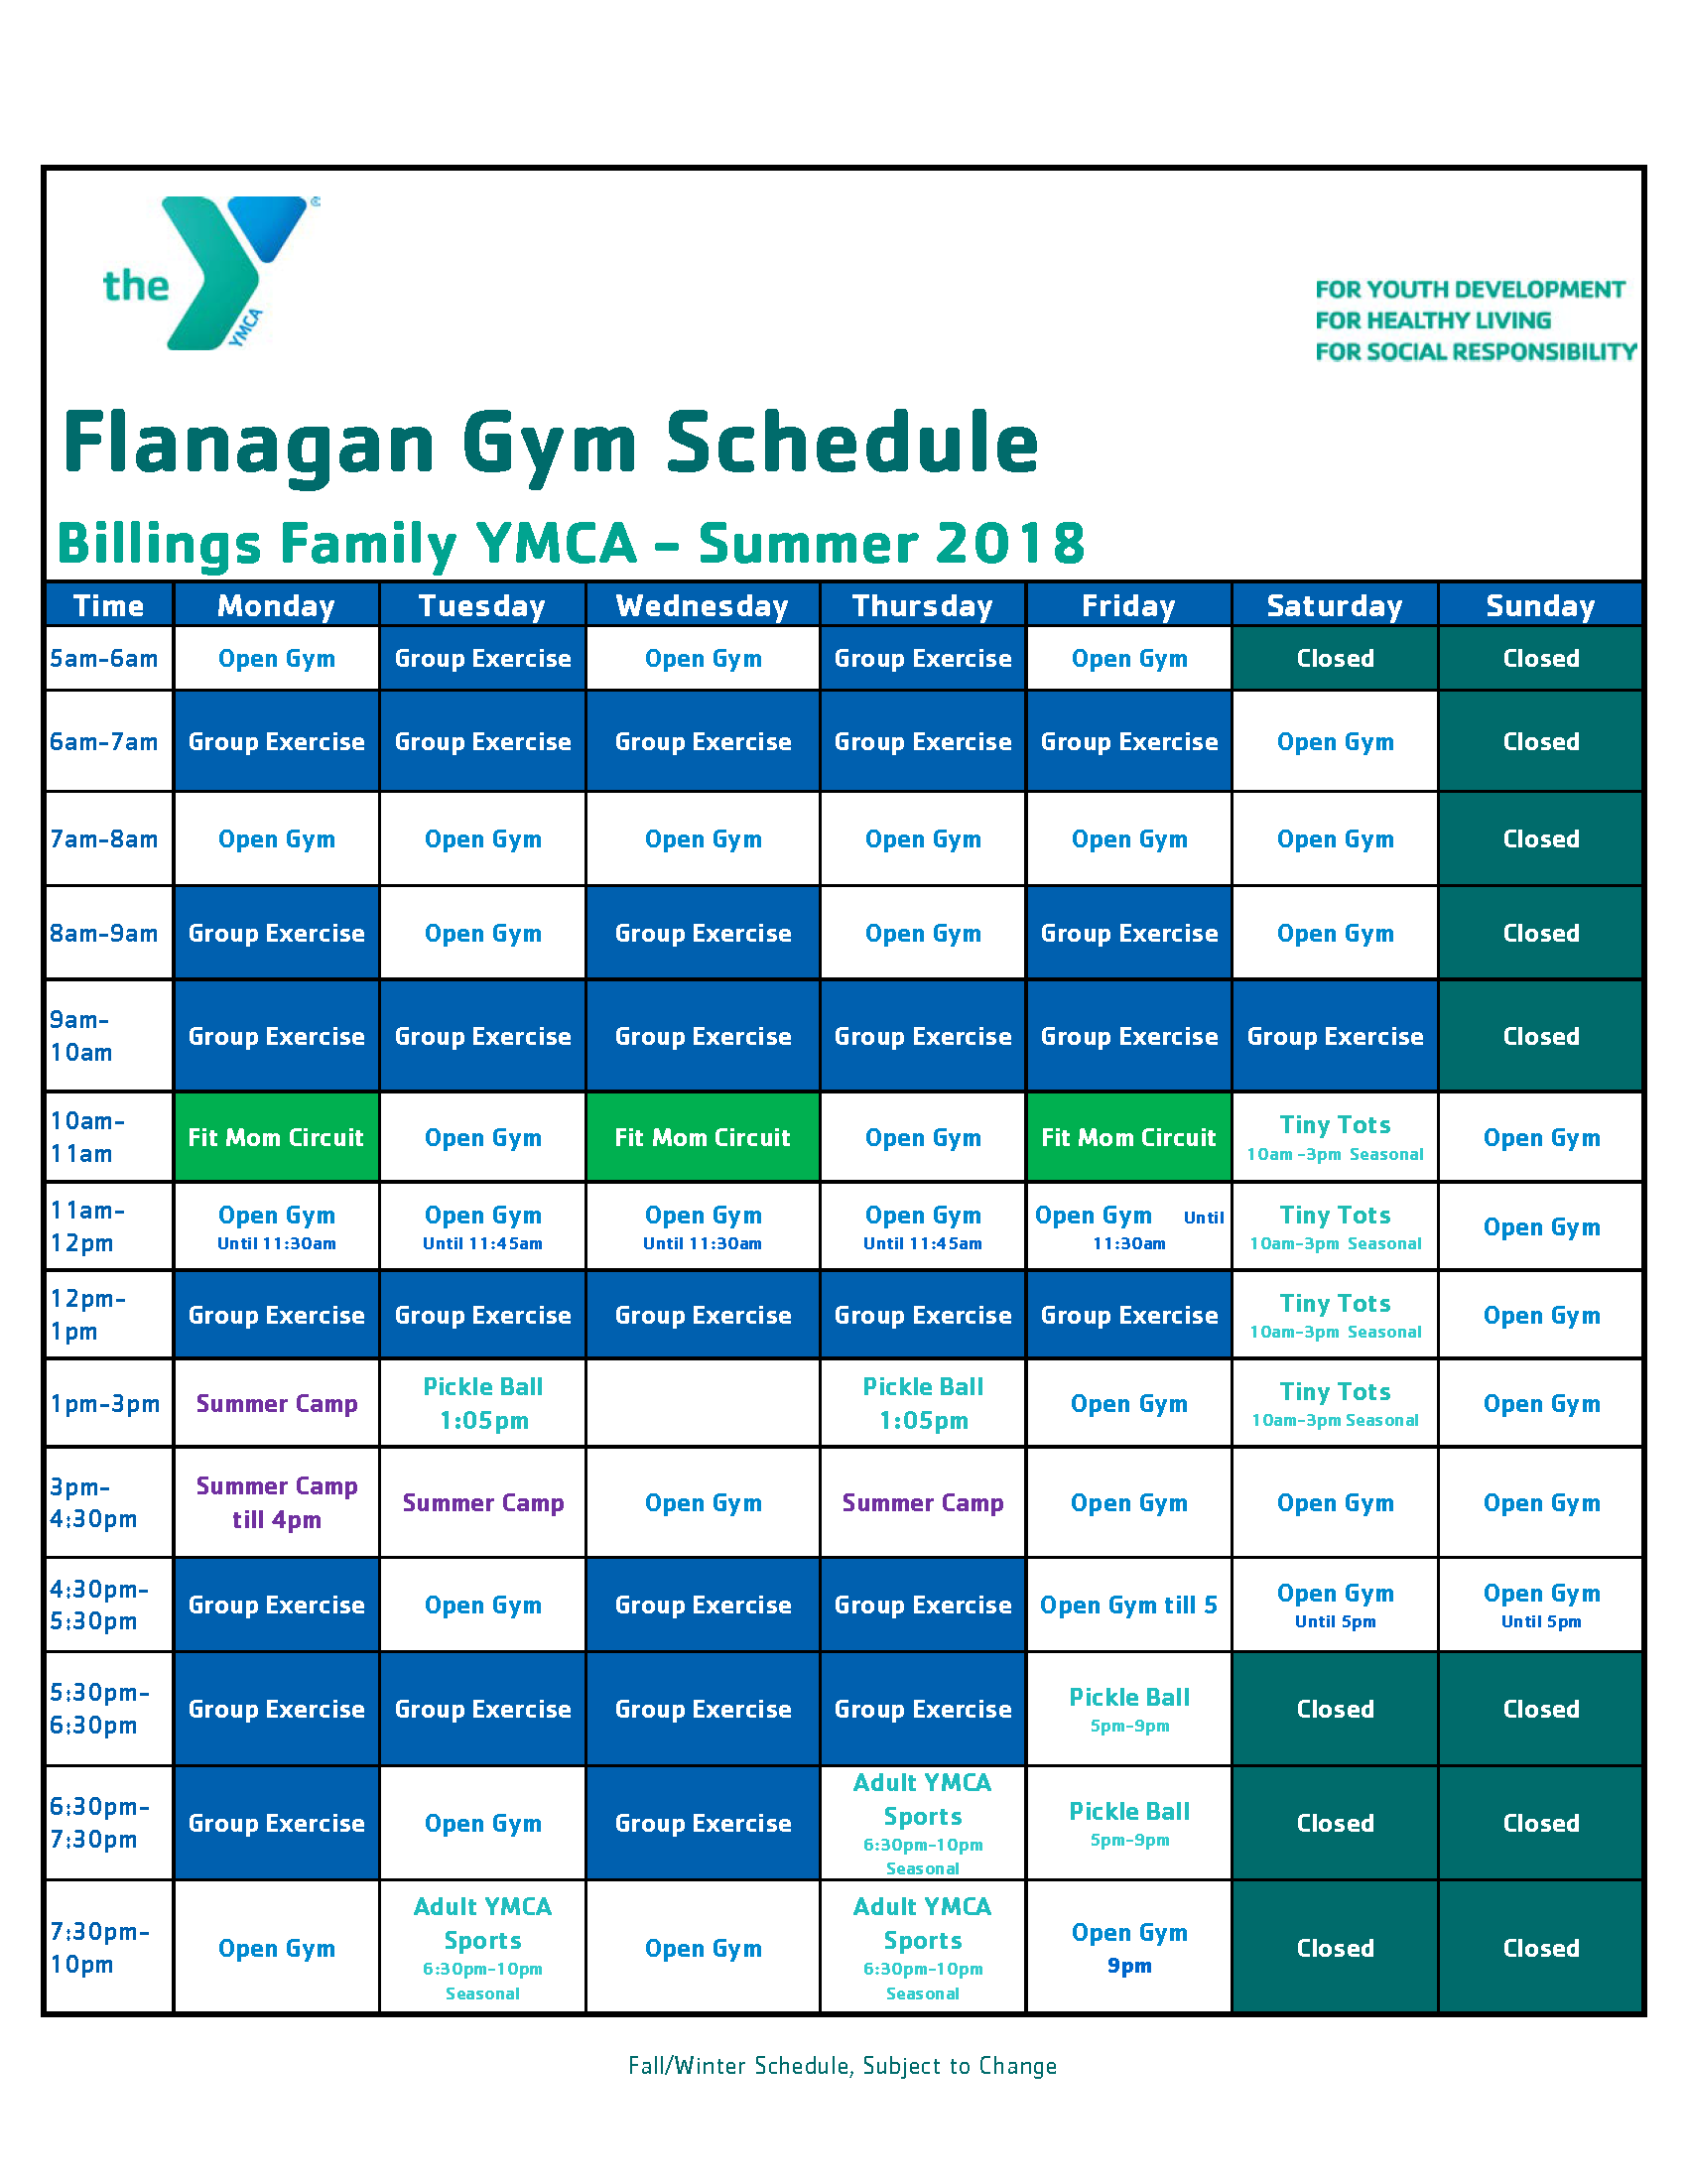 FLANAGAN GYM SCHEDULE